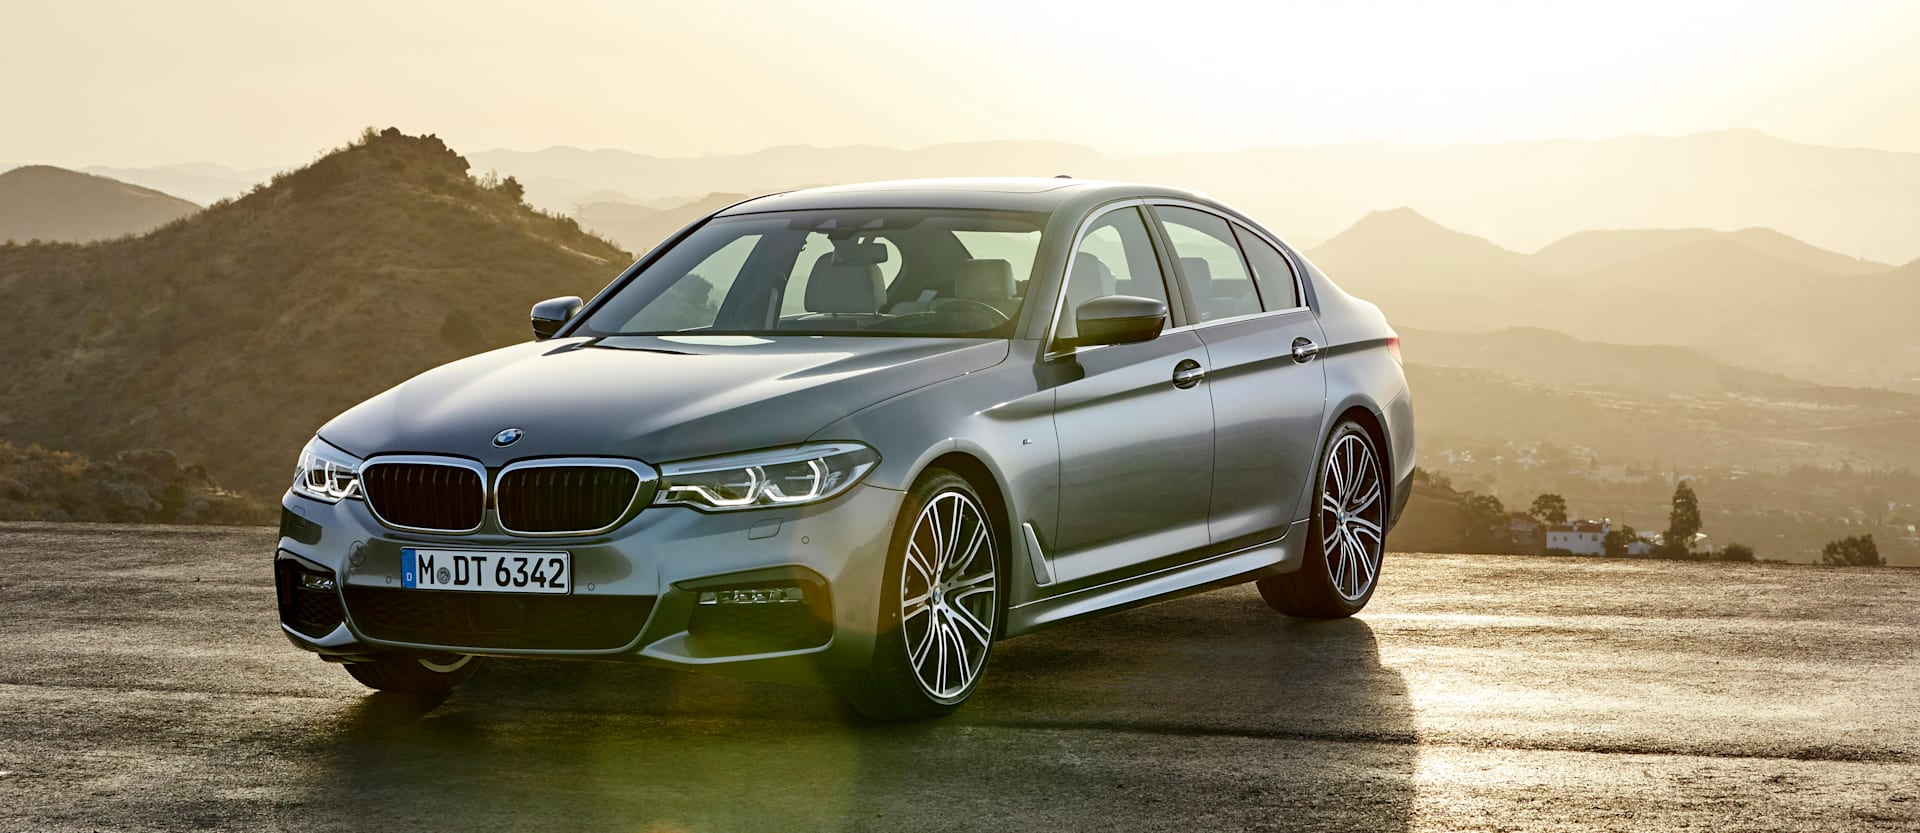 P 90237219 High Res The New Bmw 5 Series Jpg